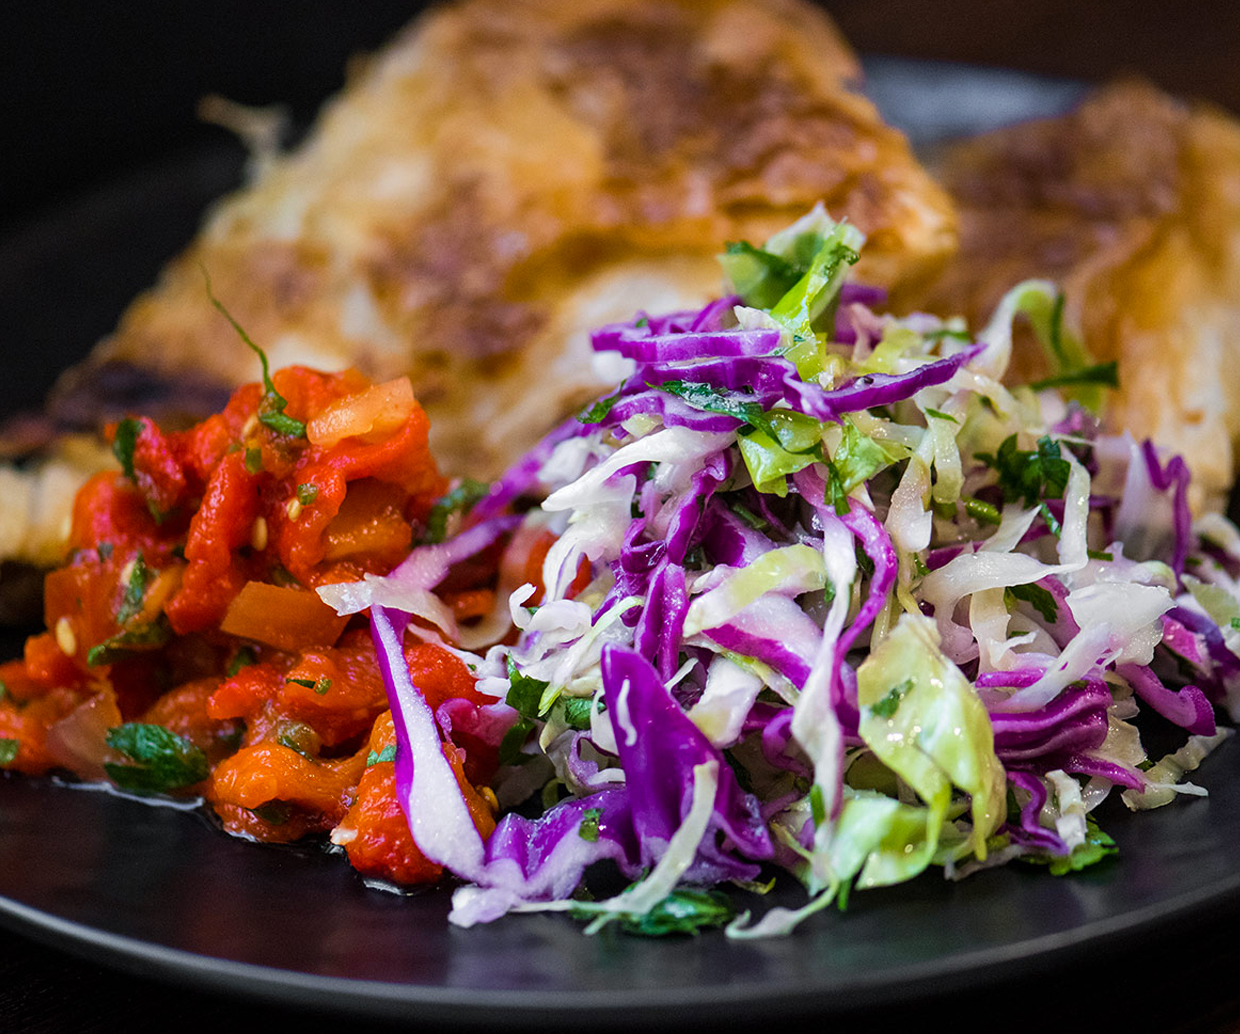 salad with balkan bread on plate